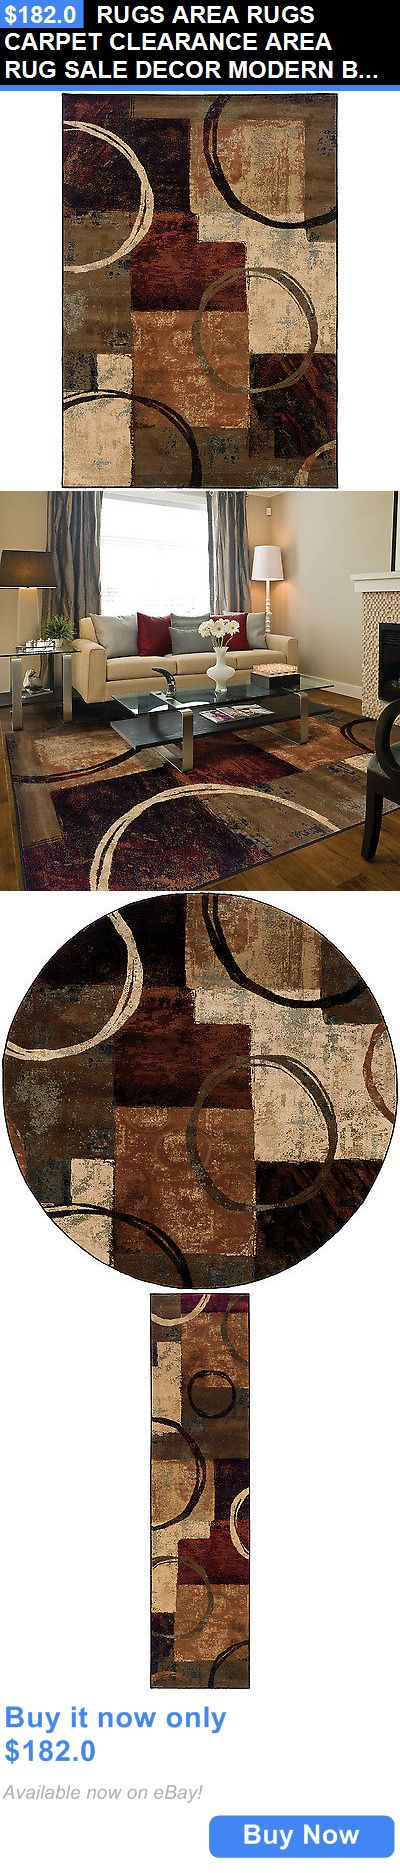 household items: Rugs Area Rugs Carpet Clearance Area Rug Sale Decor Modern Brown Rugs New BUY IT NOW ONLY: $182.0